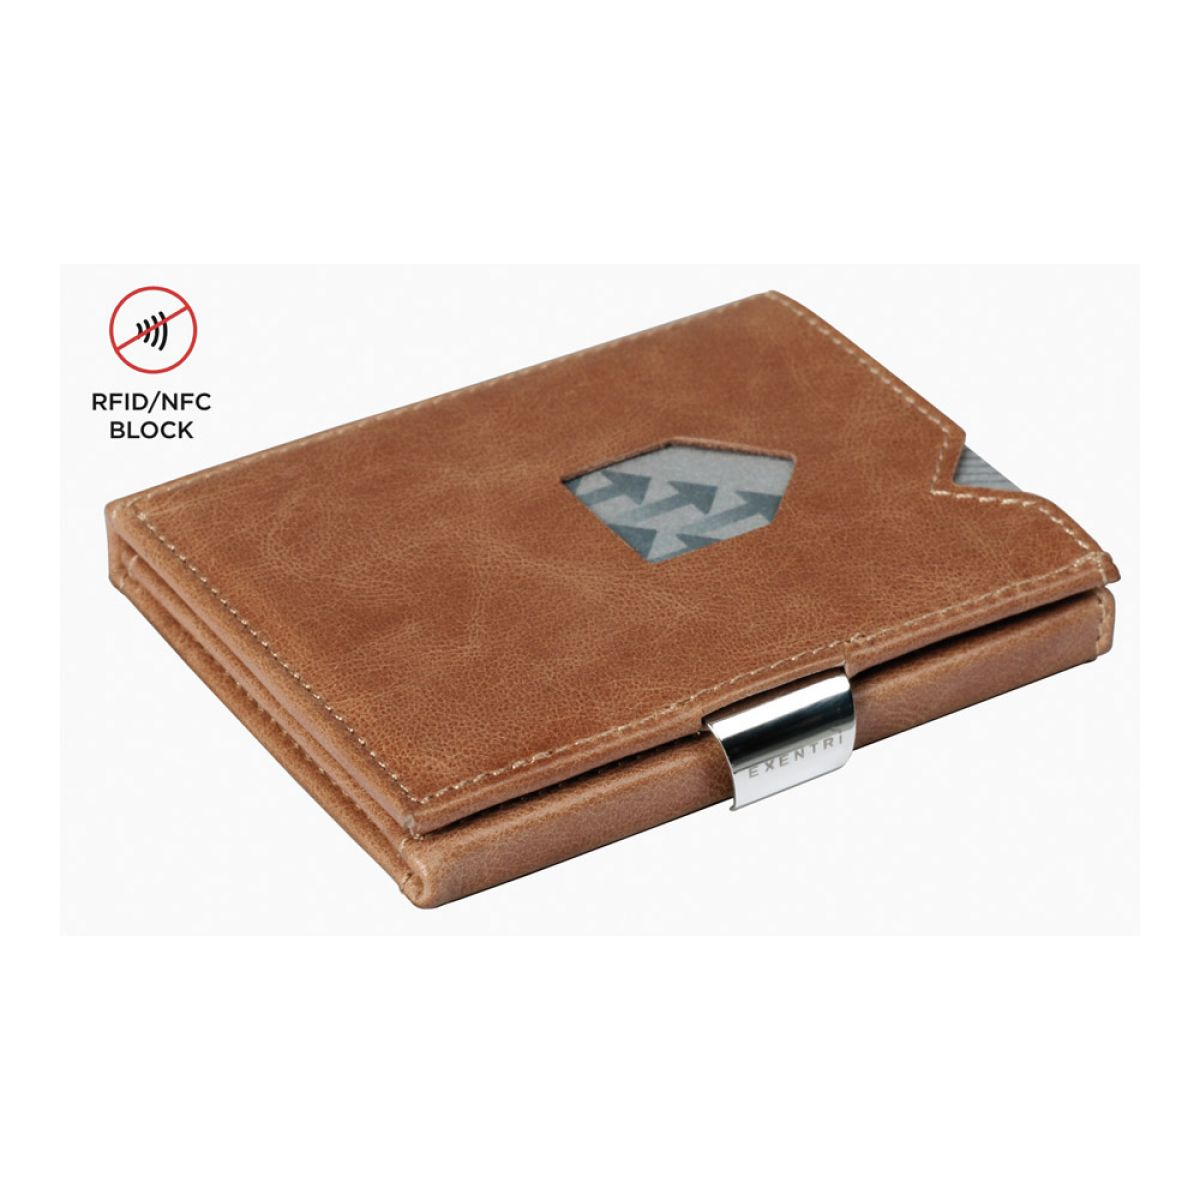 7d6b36fa6a79 Exentri - Exentri slim wallet leather solid Sand brown with RFID block ...